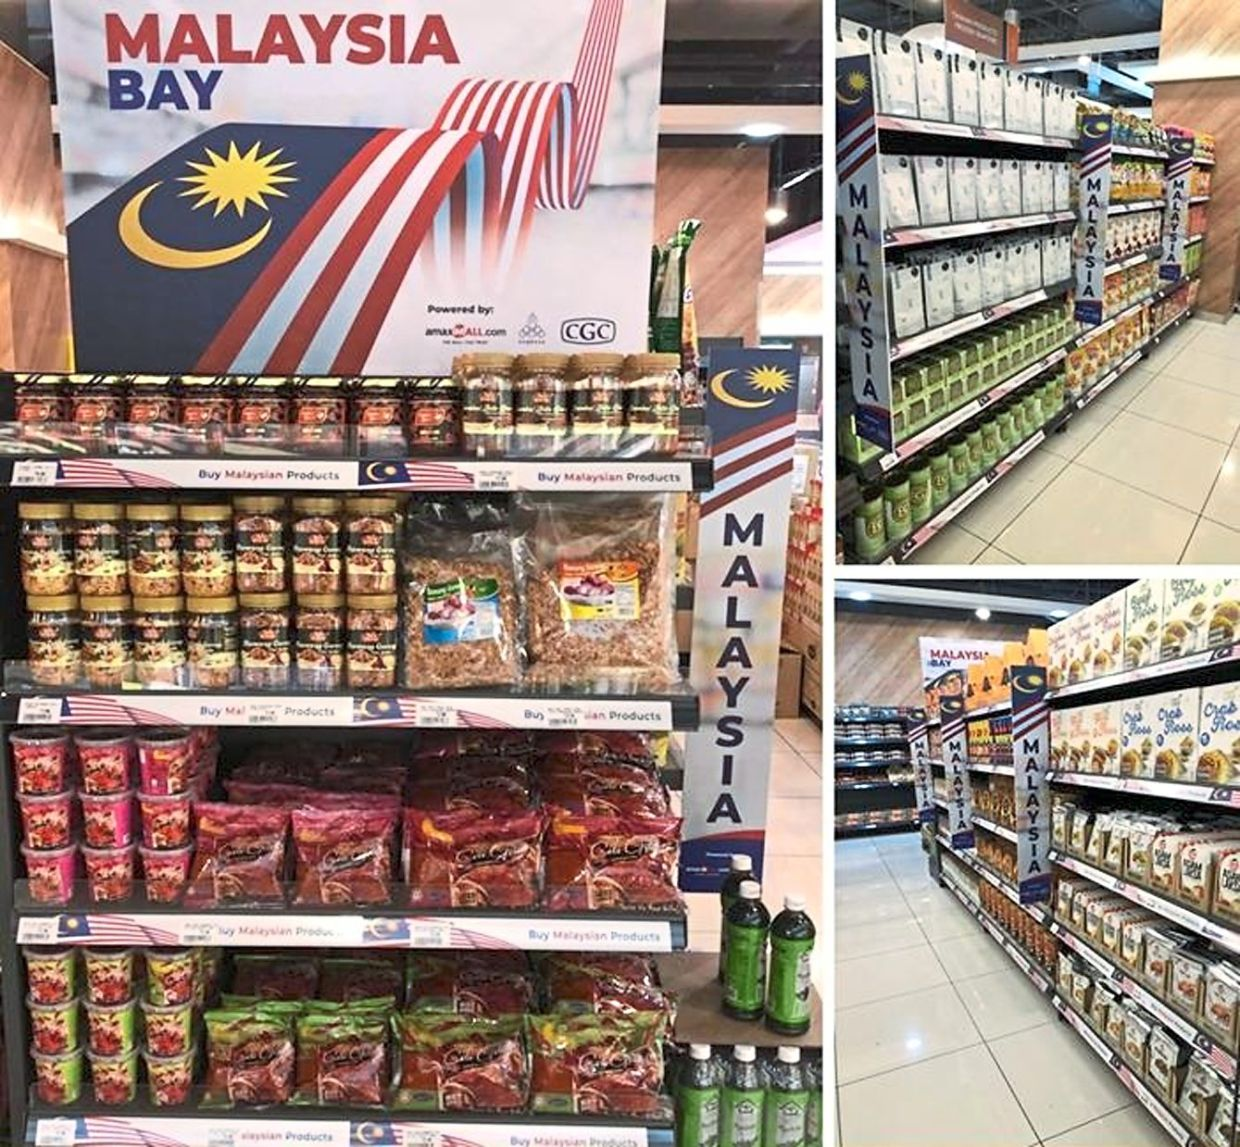 Easing access into new markets: A CGC customer's products on display in the Singapore market. There are more than 60 products from 10 customers that have successfully penetrated a halal supermarket in Westgate, Singapore.